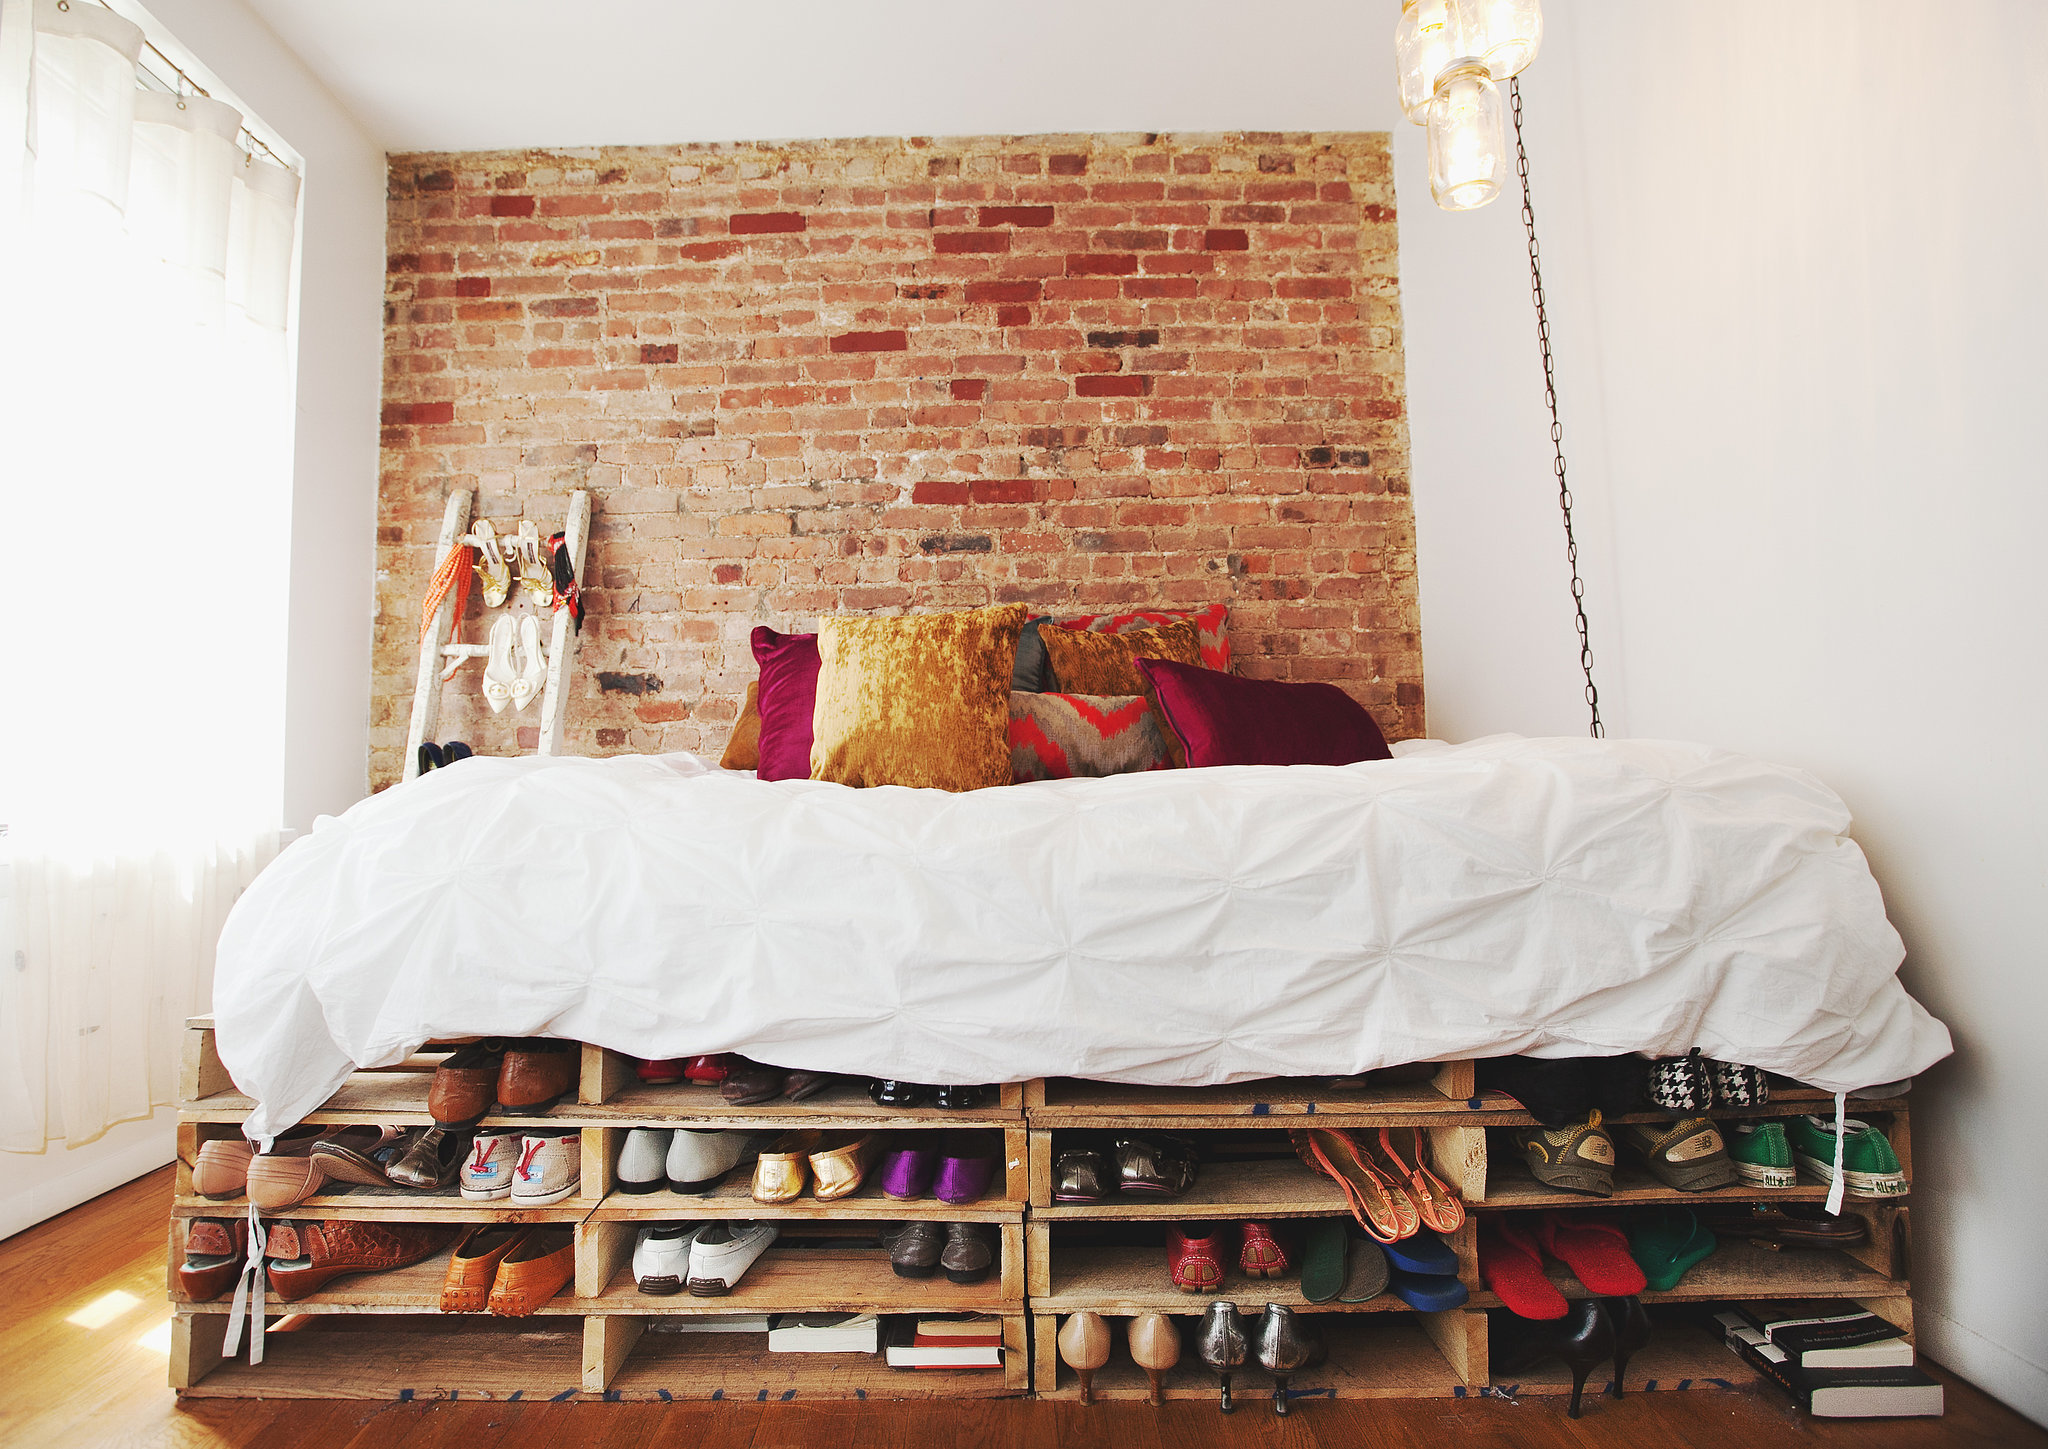 No doubt, the room's focal point is the day bed (that also doubles as a sofa). The frame was made stacking industrial wooden shipping pallets;  a cute and clever way to store shoes!  Photo by Chellise Michael via Homepolish